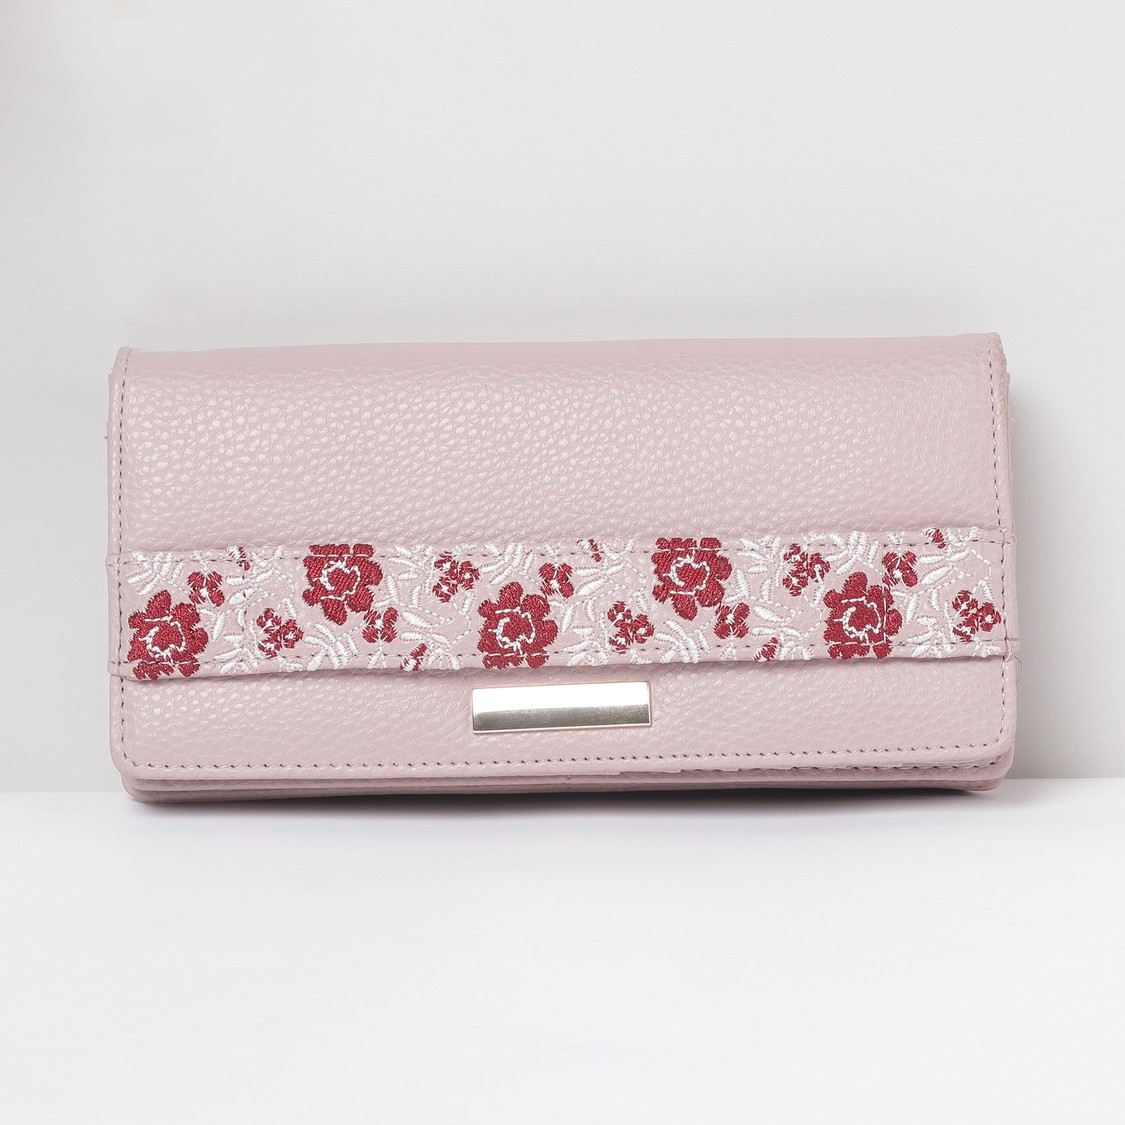 MAX Embroidered Magnetic Closure Wallet